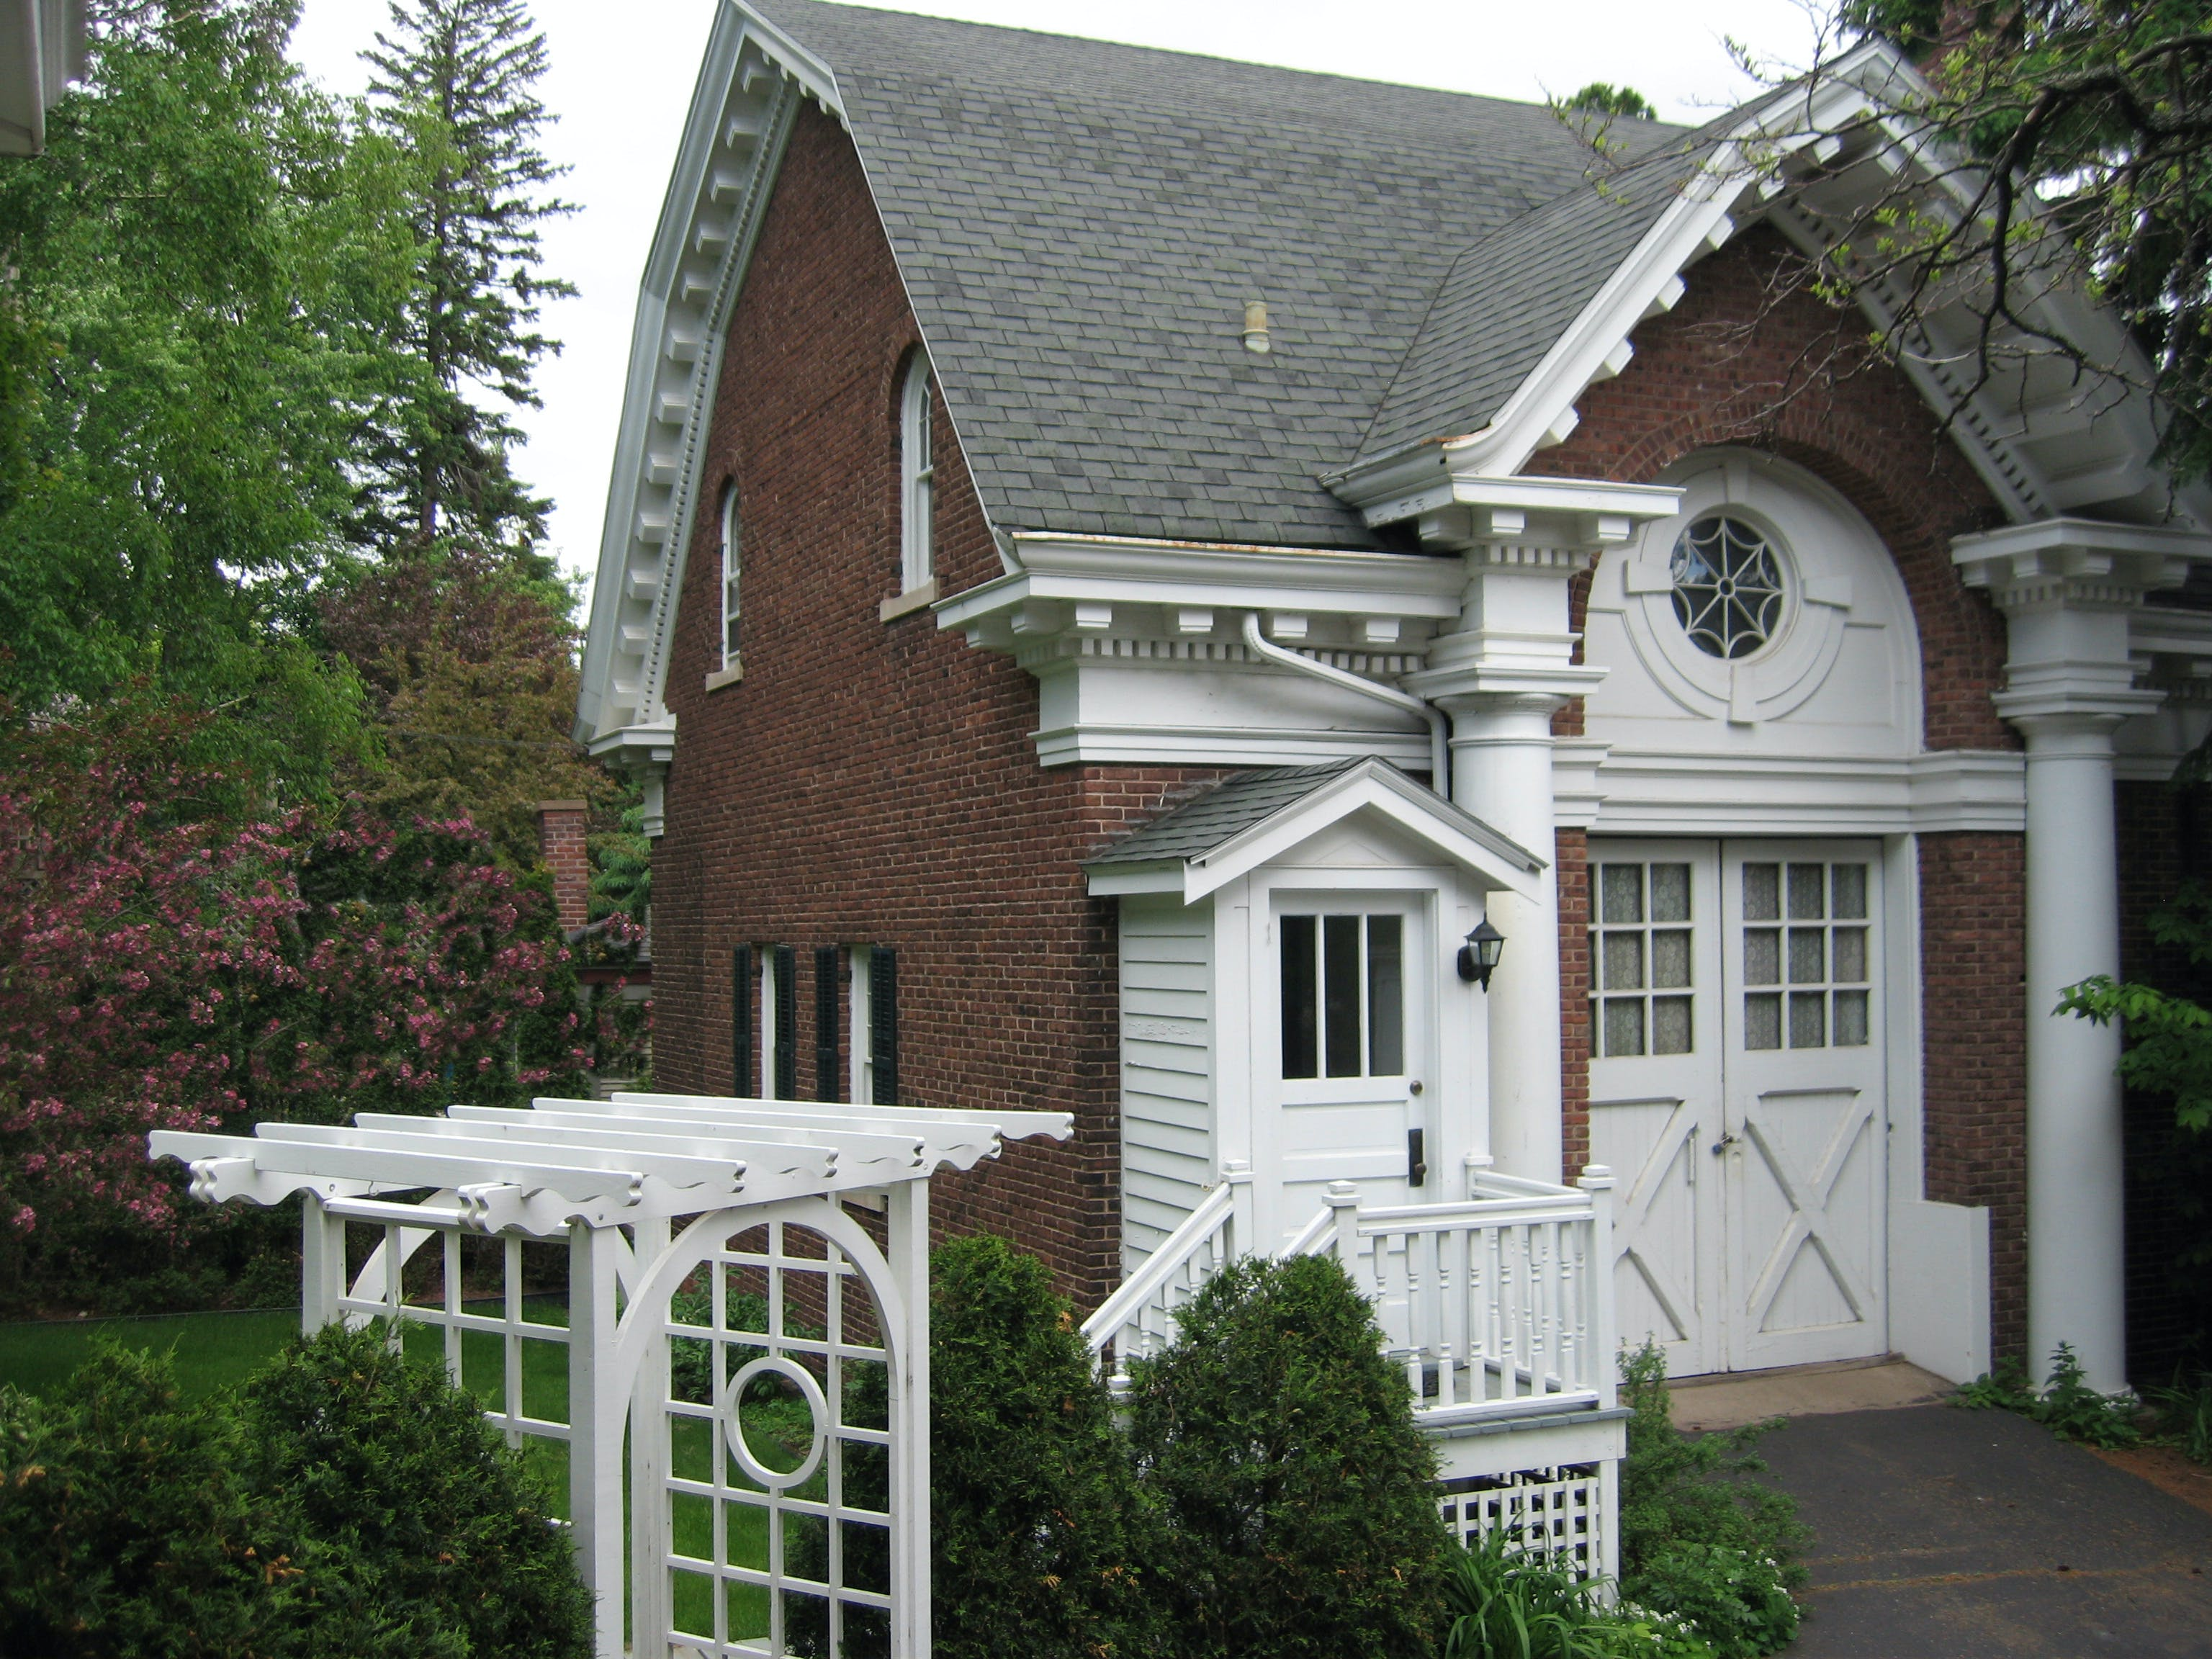 Carriage House exterior